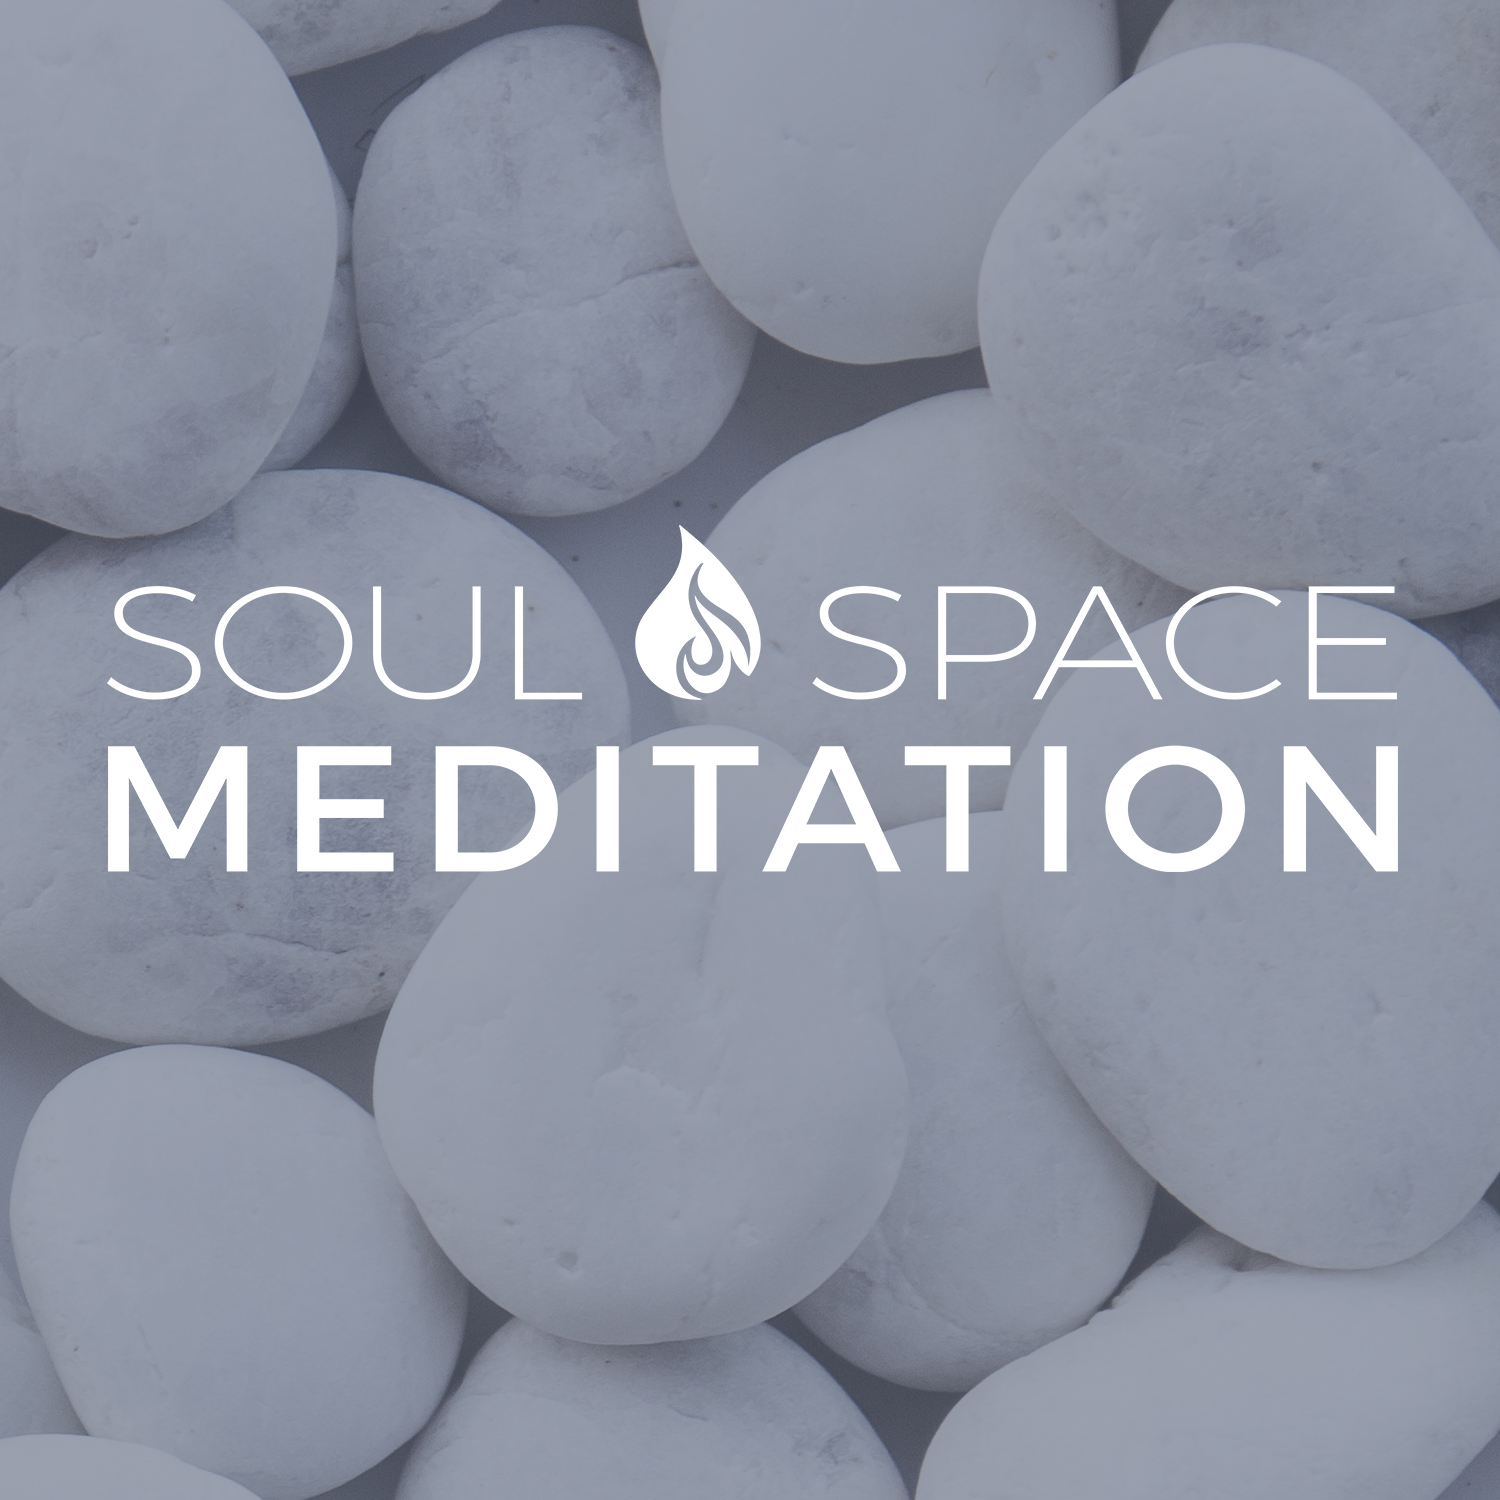 meditation-logo-design.jpg